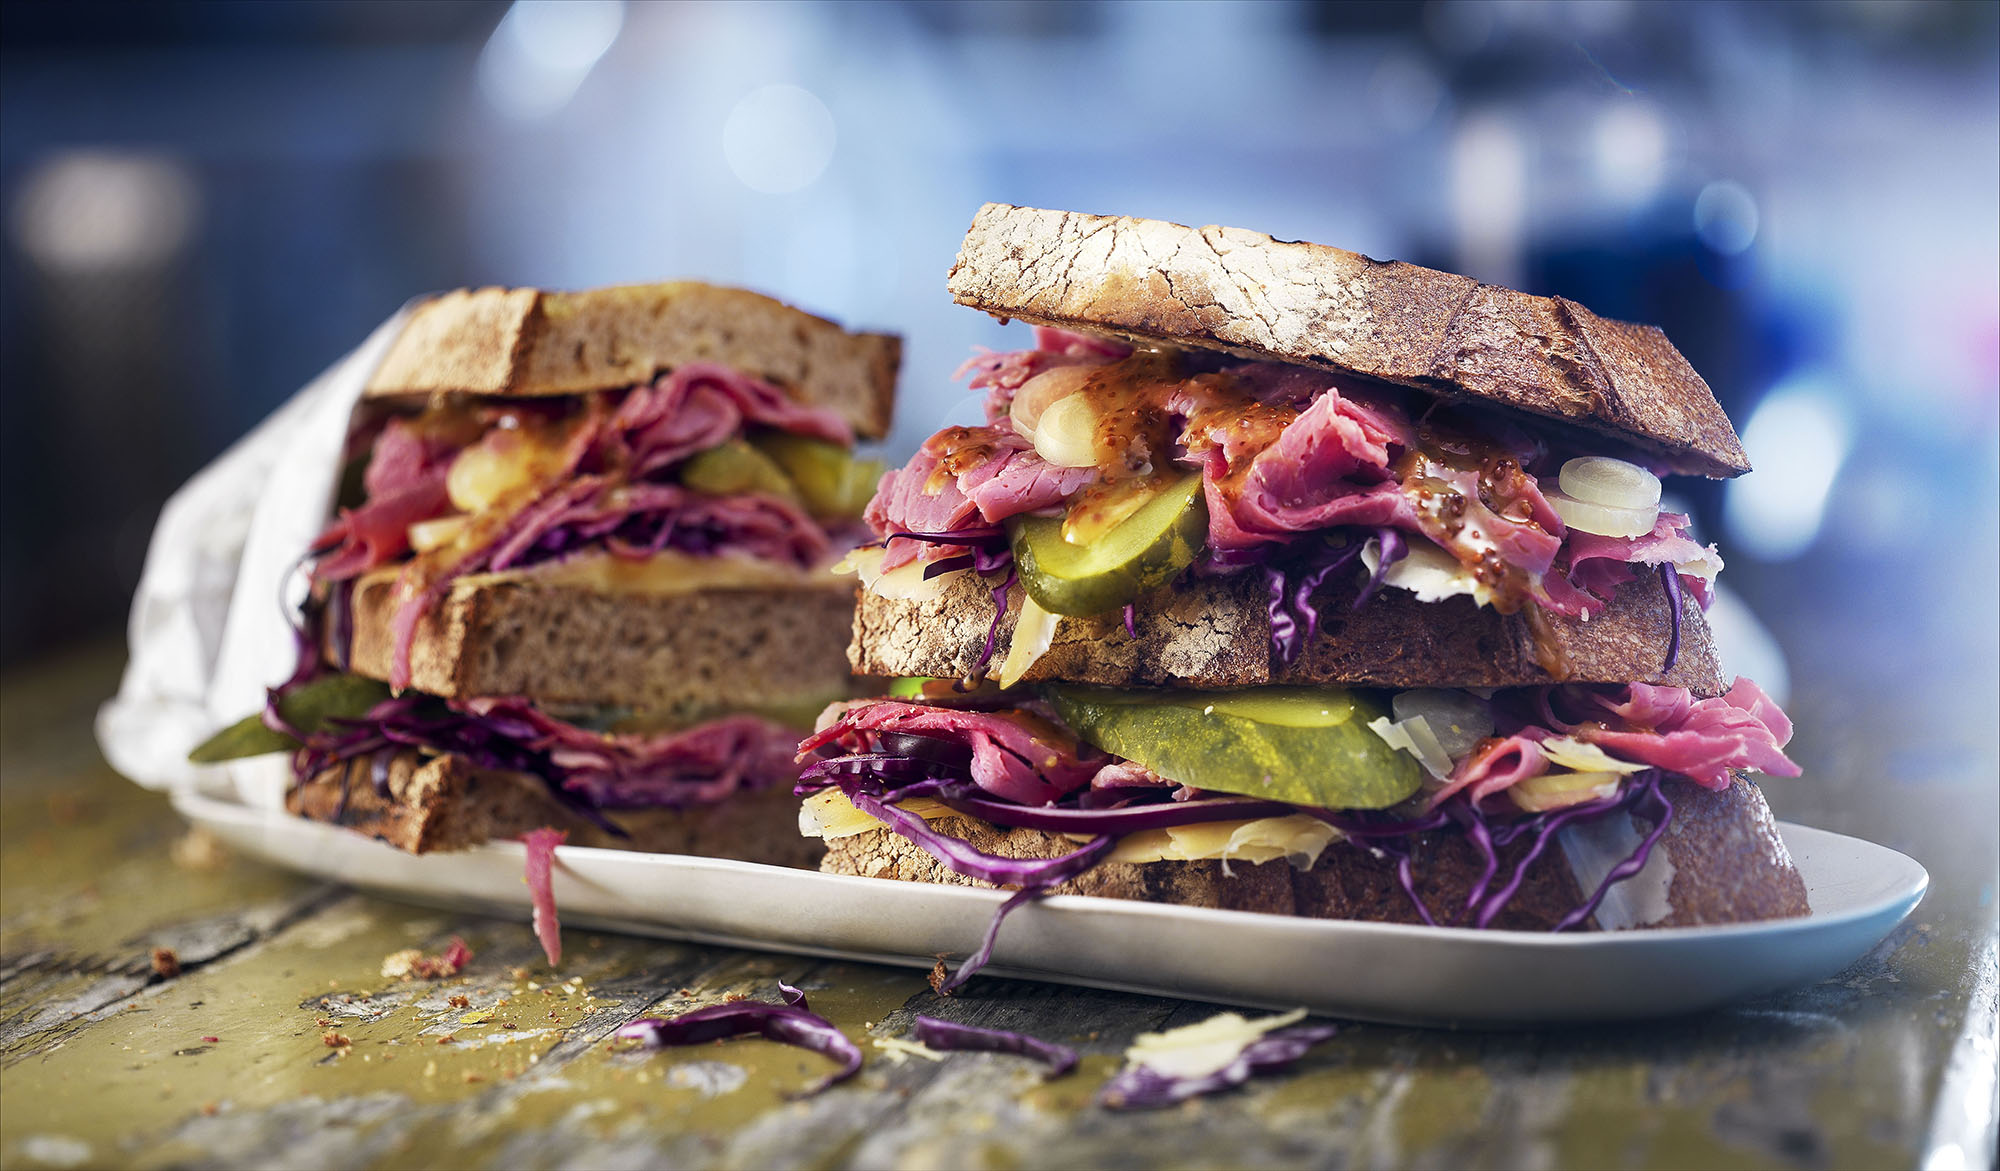 Food photography styling of pastrami sandwiches made by Studio_m Photography Amsterdam